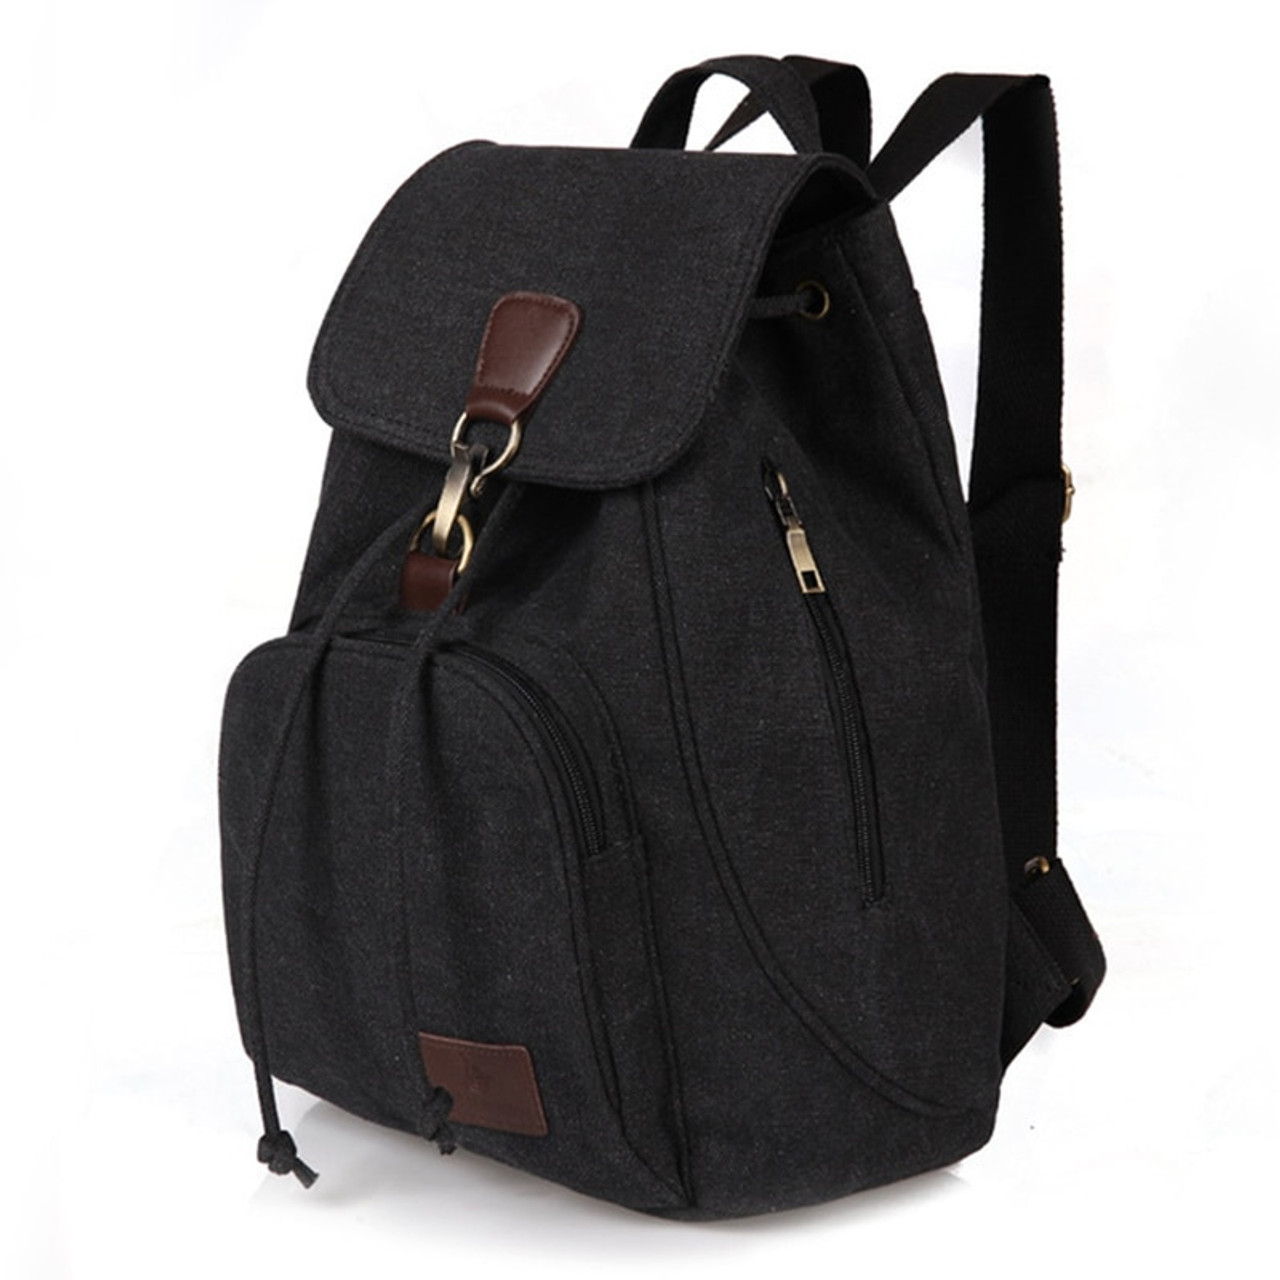 59b504f4777c Woman canvas backpacks female vintage bag fashion backpacks for teenage girls  retro College student school bags ...